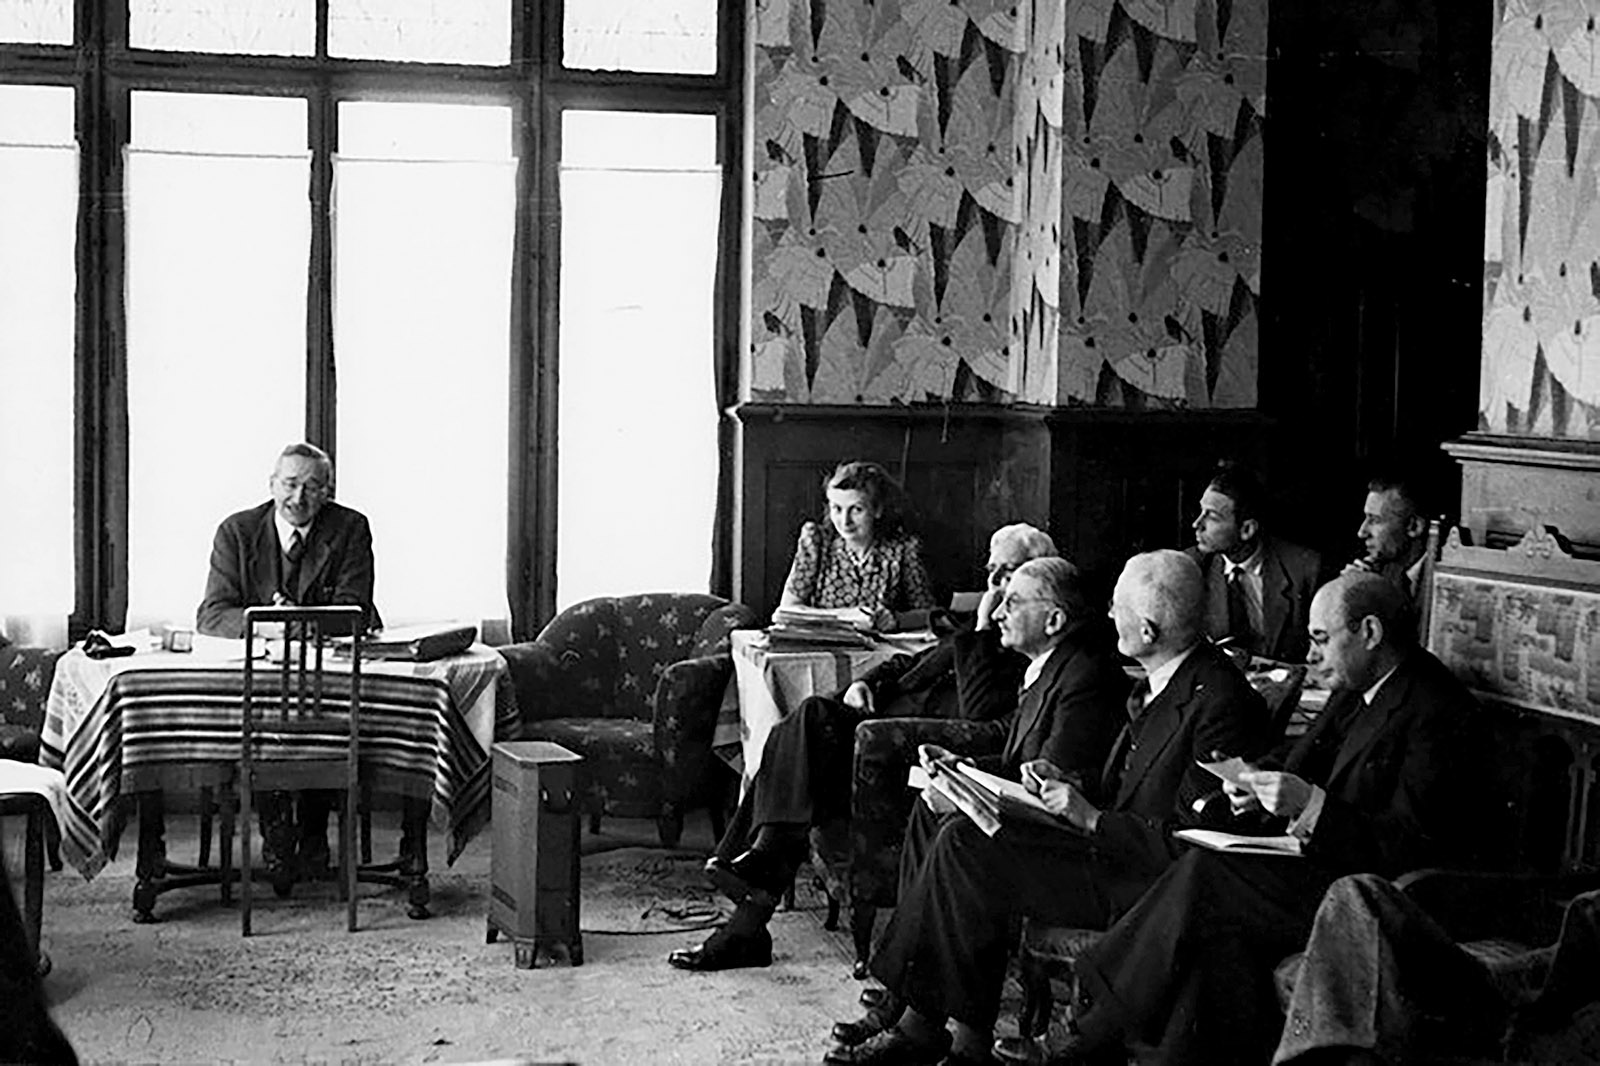 Mont Pelerin Society with founding members Friedrich Hayek and Ludwig von Mises